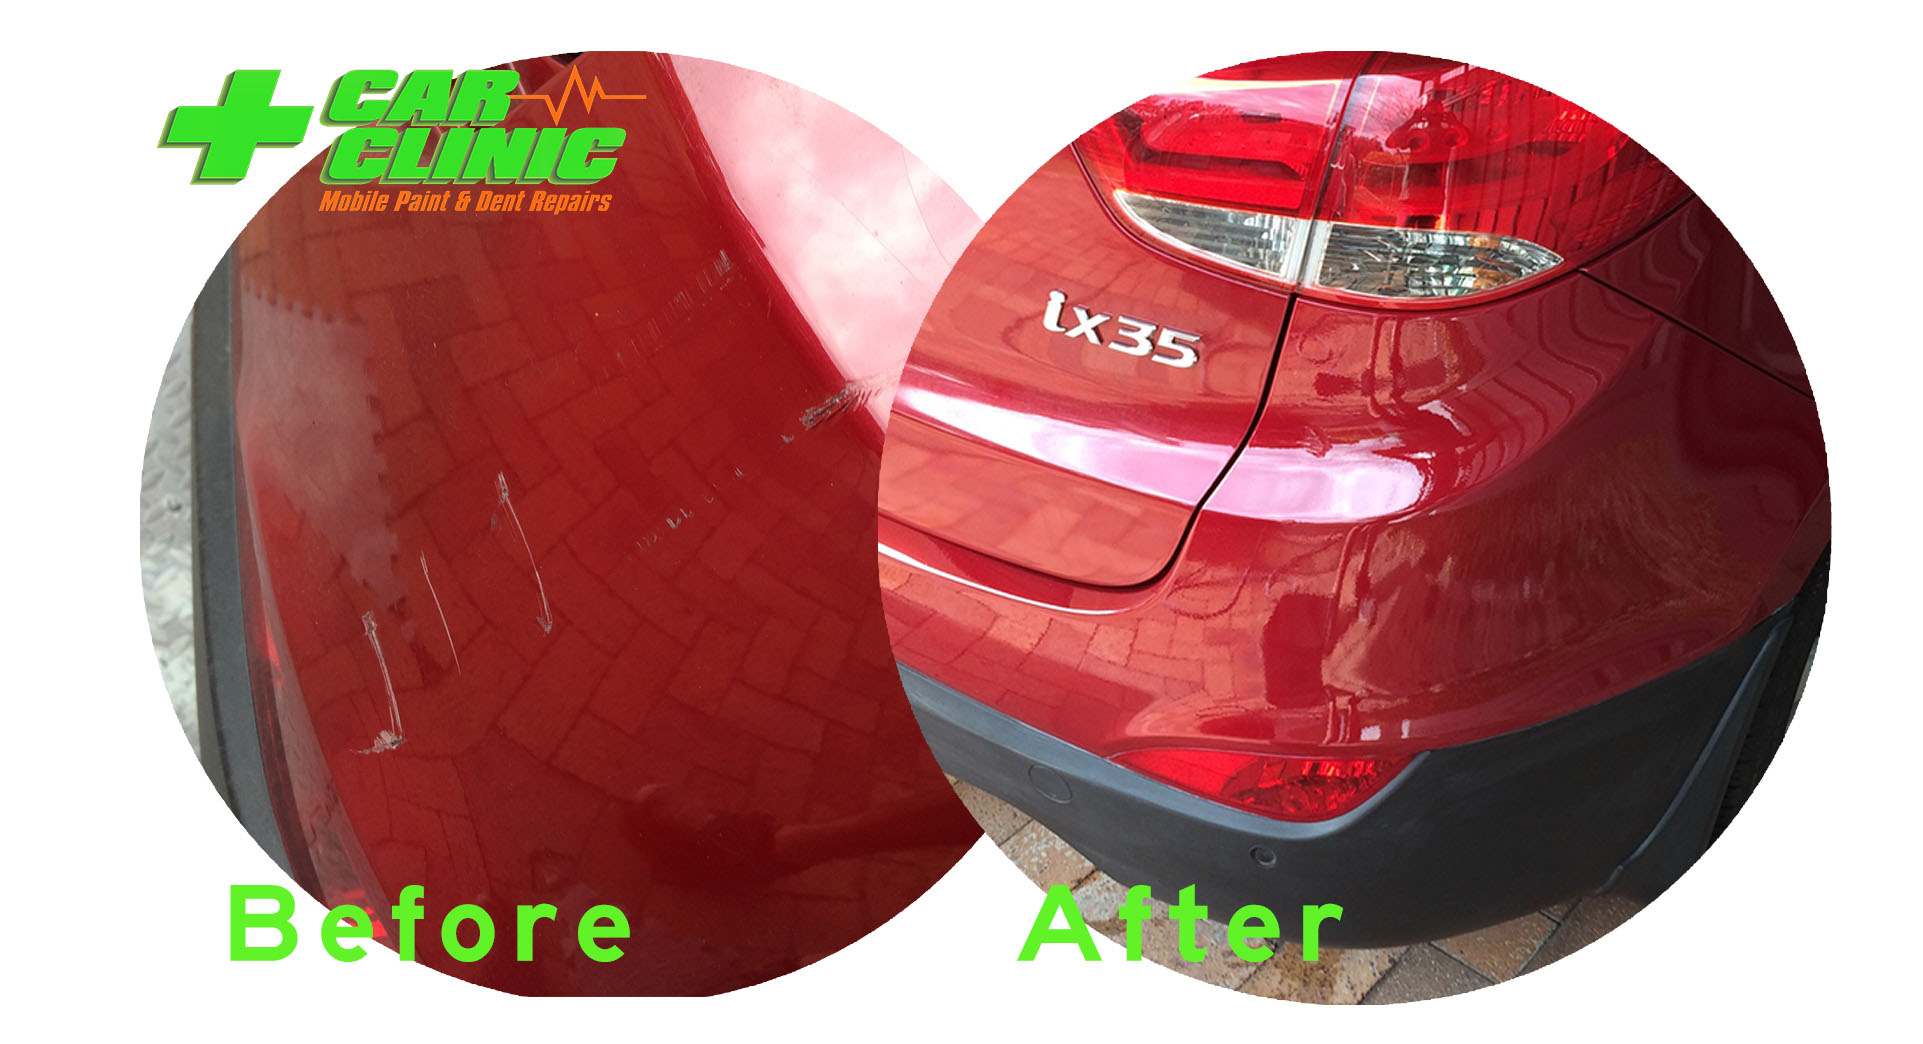 Mobile Paint & Dent Repairs - Brisbane - Before After Image 05